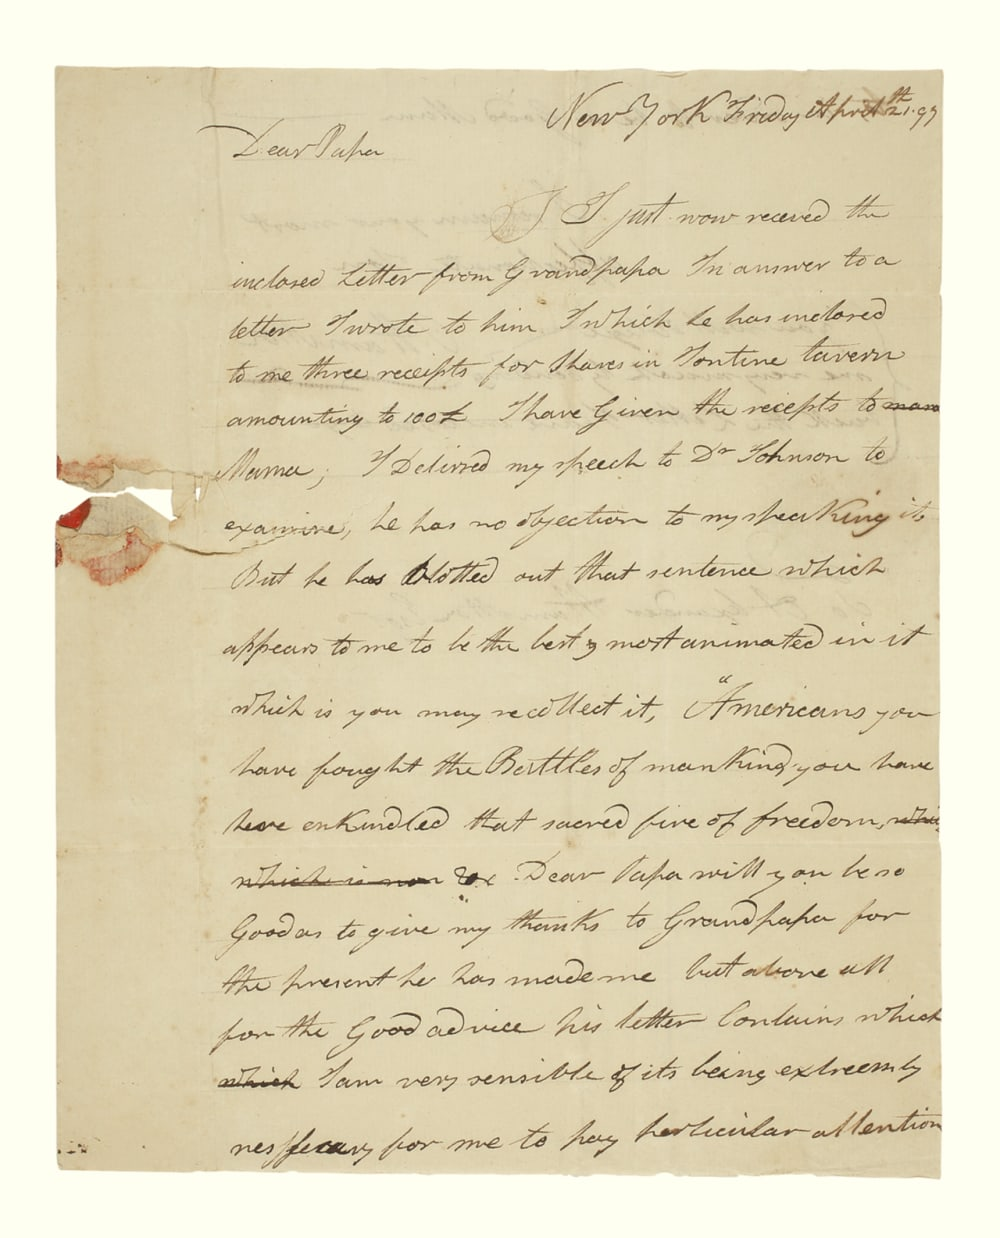 7. LETTER FROM PHILIP HAMILTON TO ALEXANDER // LOT 1052